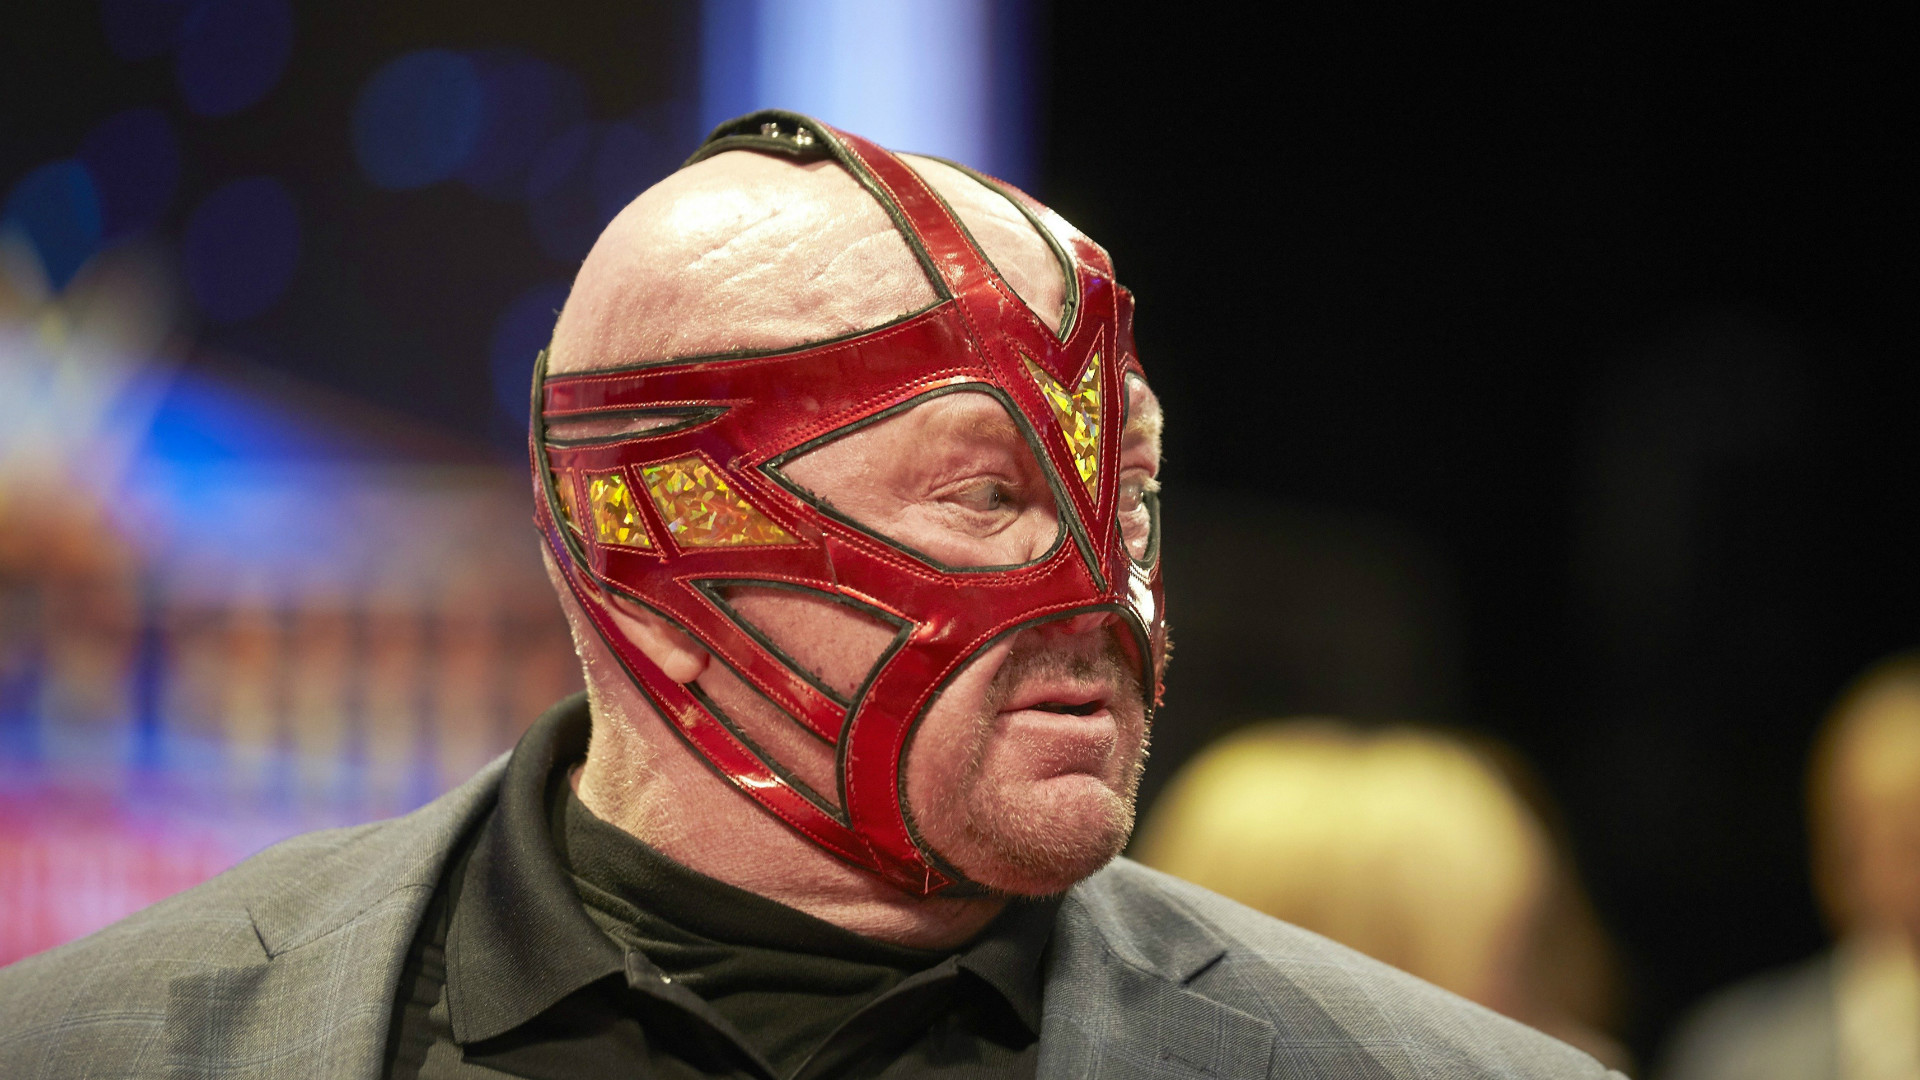 WWE and WCW icon Big Van Vader.